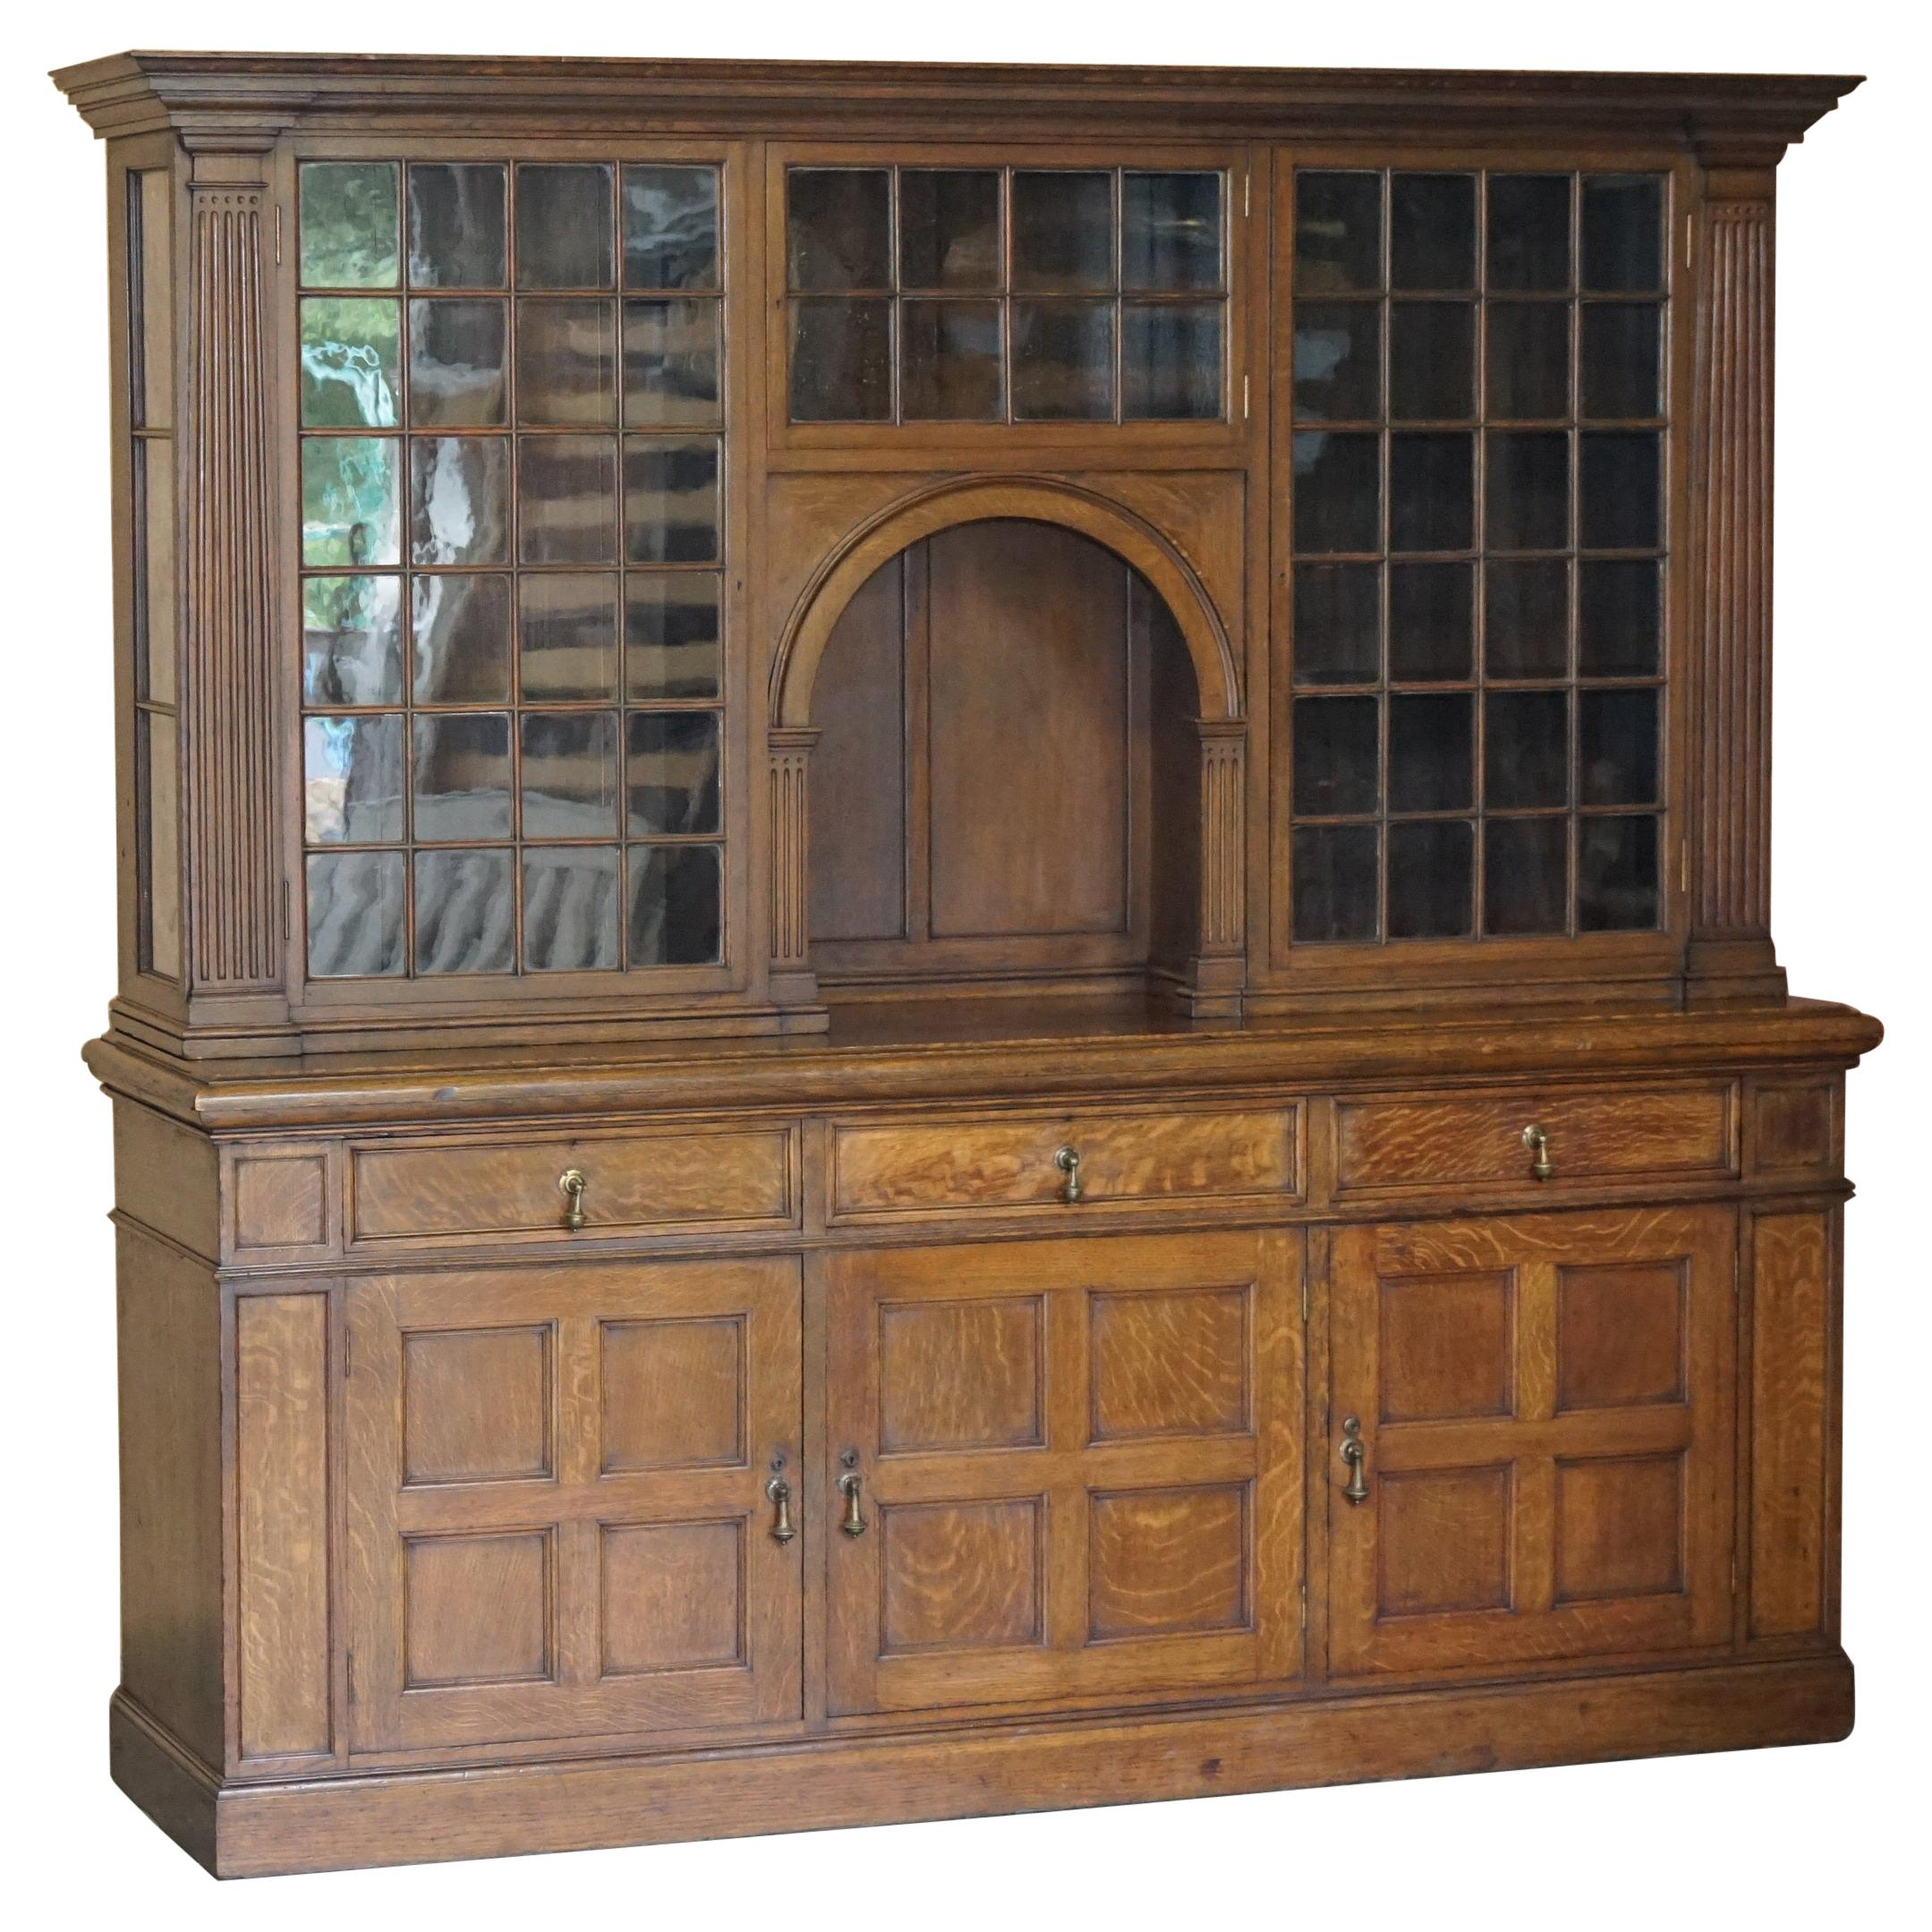 Antique Victorian Liberty of London Panelled Oak Welsh Dresser Library Bookcase